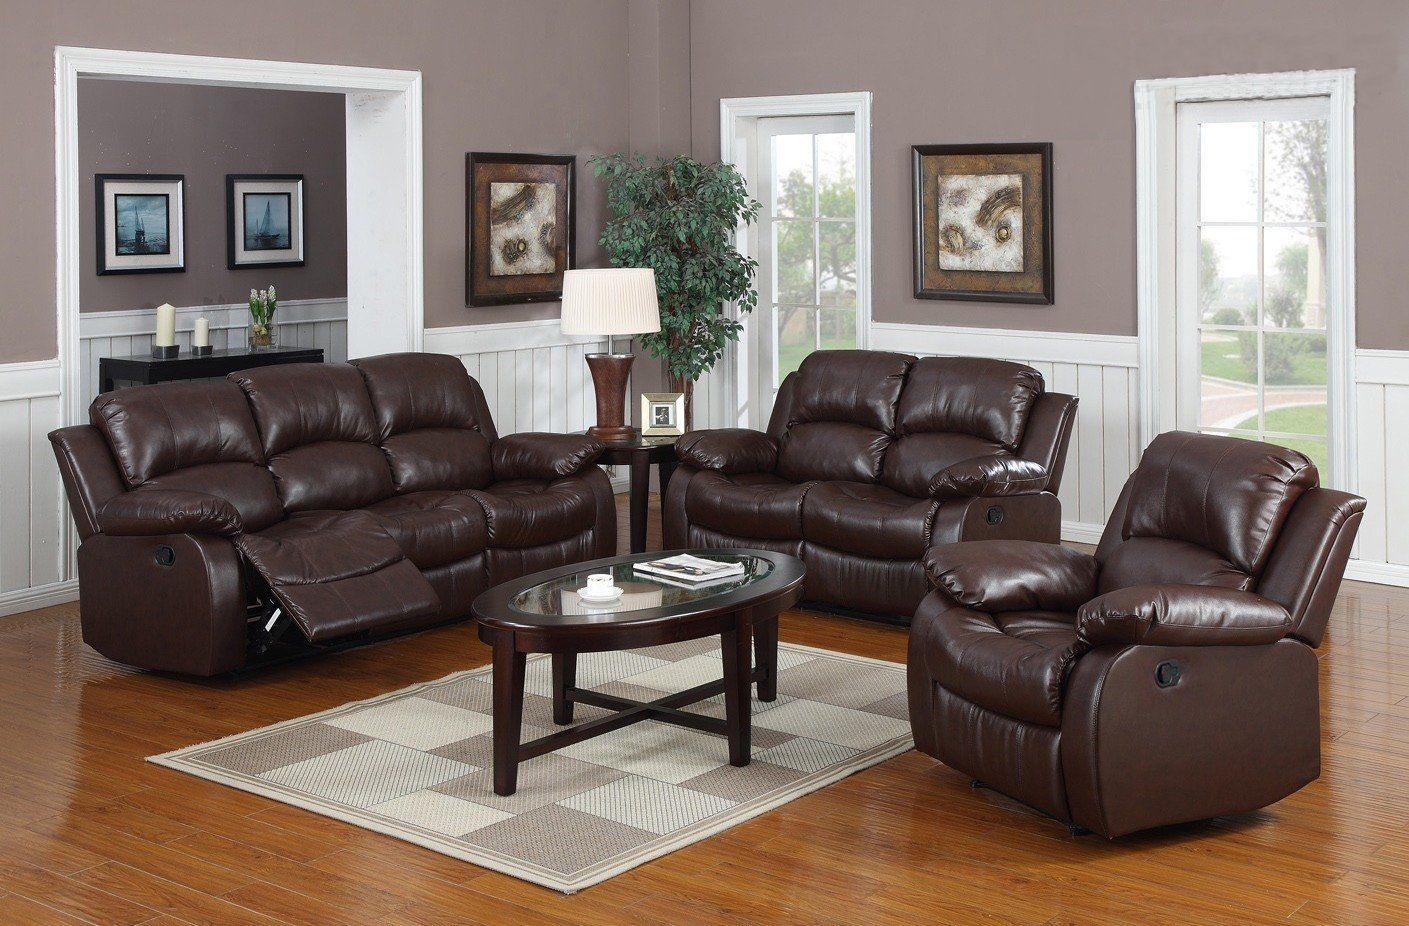 Huntington 3 Pc Bonded Leather Sofa Loveseat Chair Set With 5 Recliners